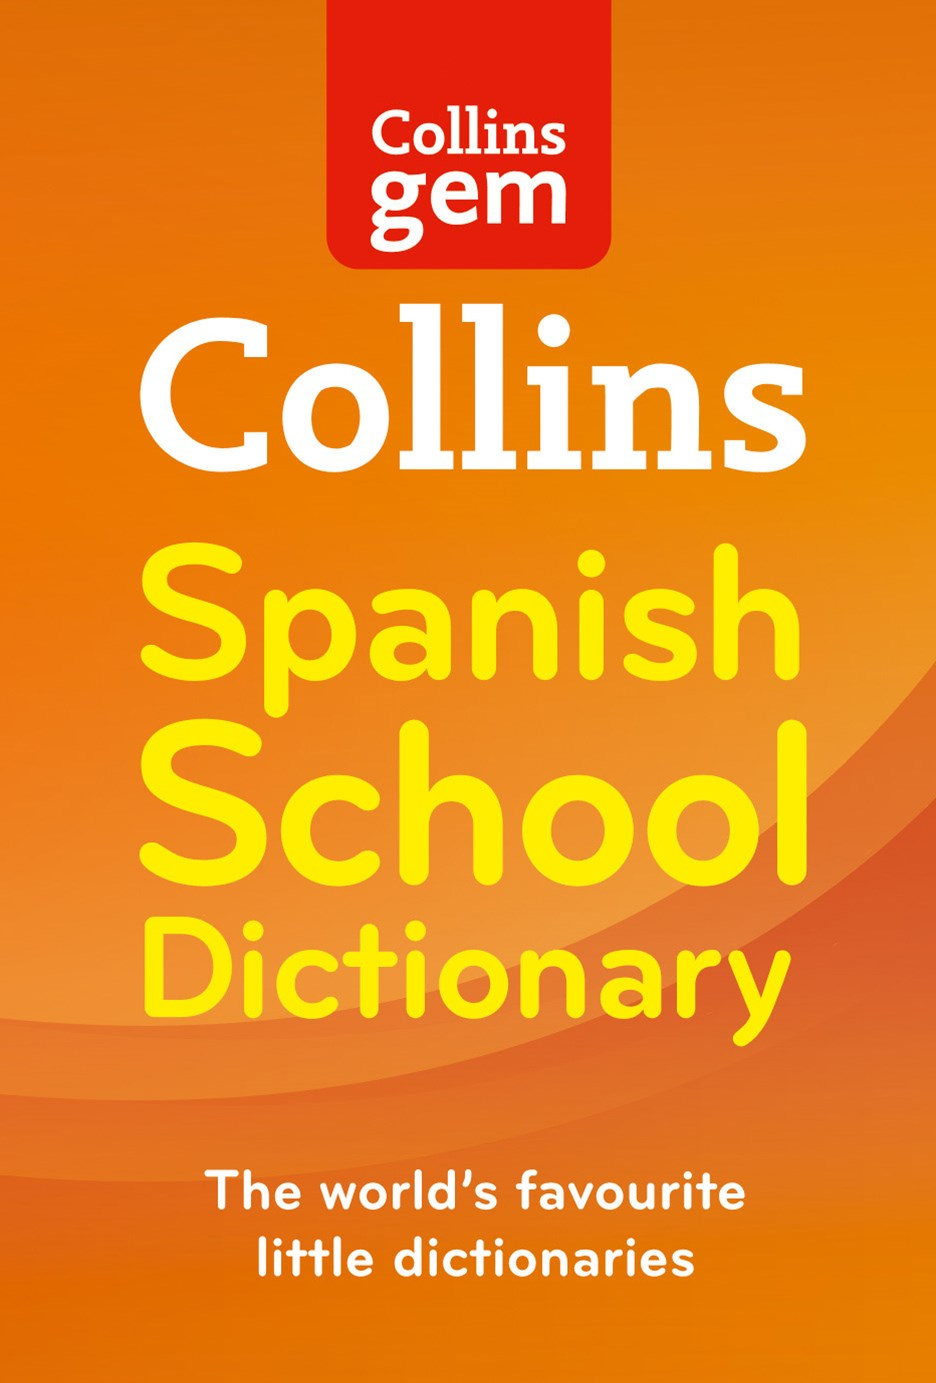 Collins Gem Spanish School Dictionary [3rd Edition]